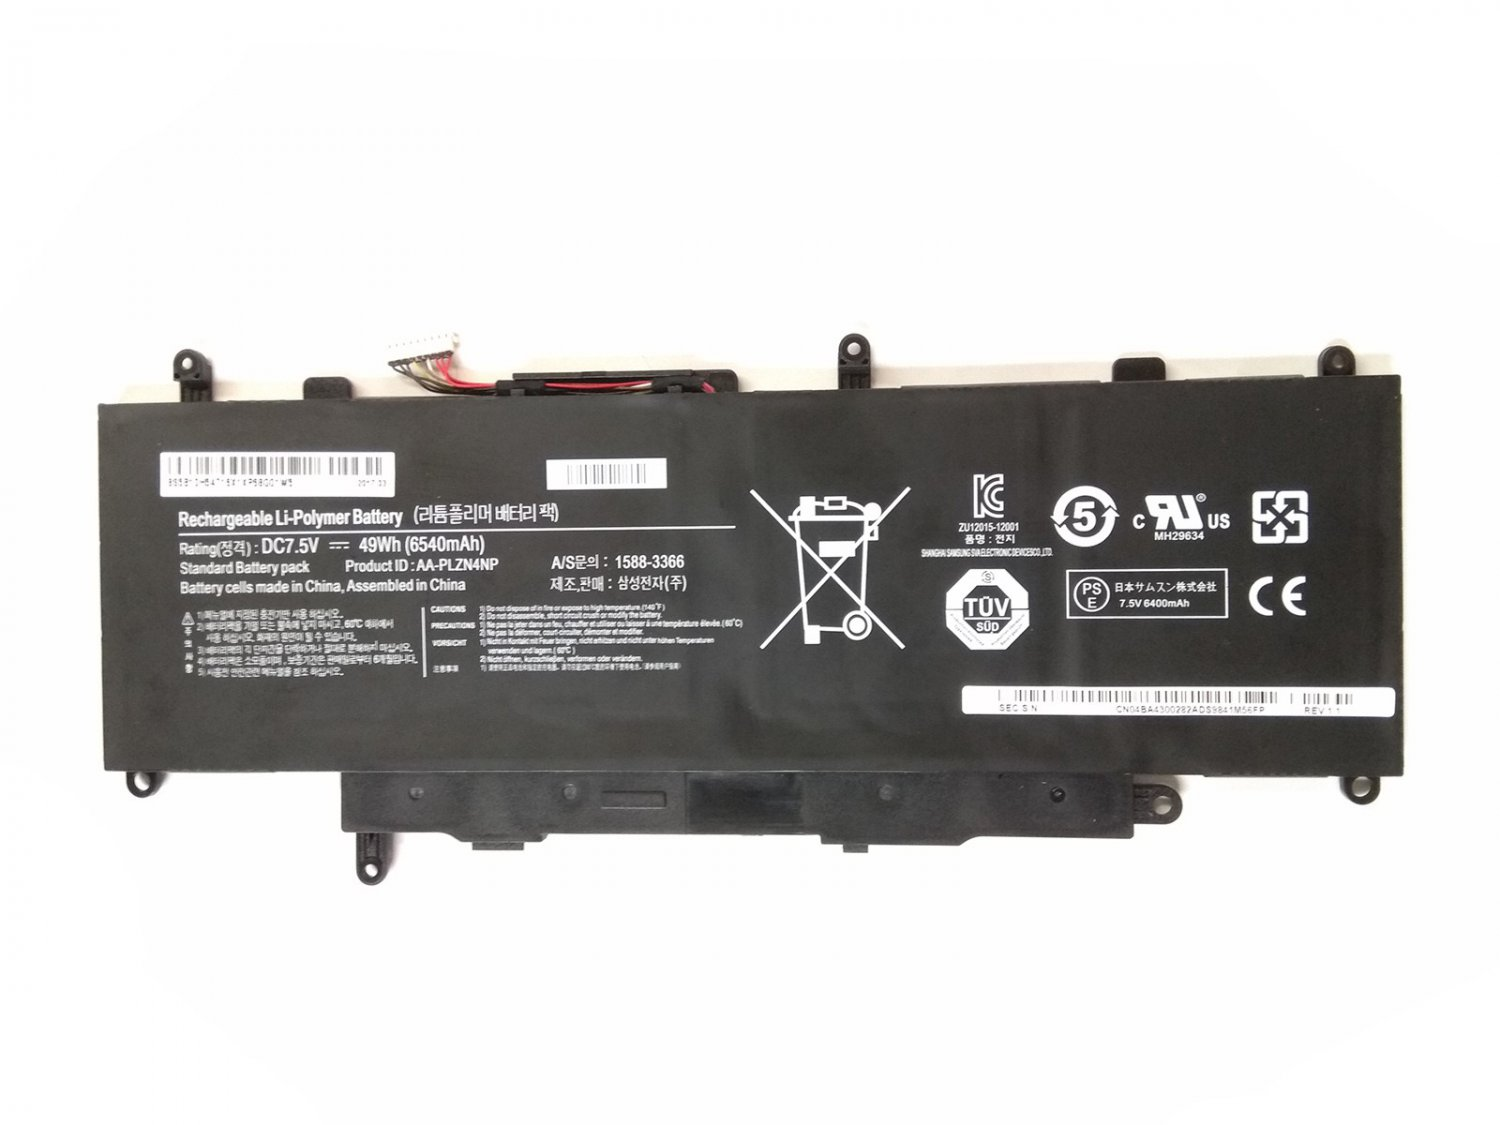 AA-PLZN4NP Battery For Samsung ATIV XE700T1C-H01MY XE770T1C-G02CH